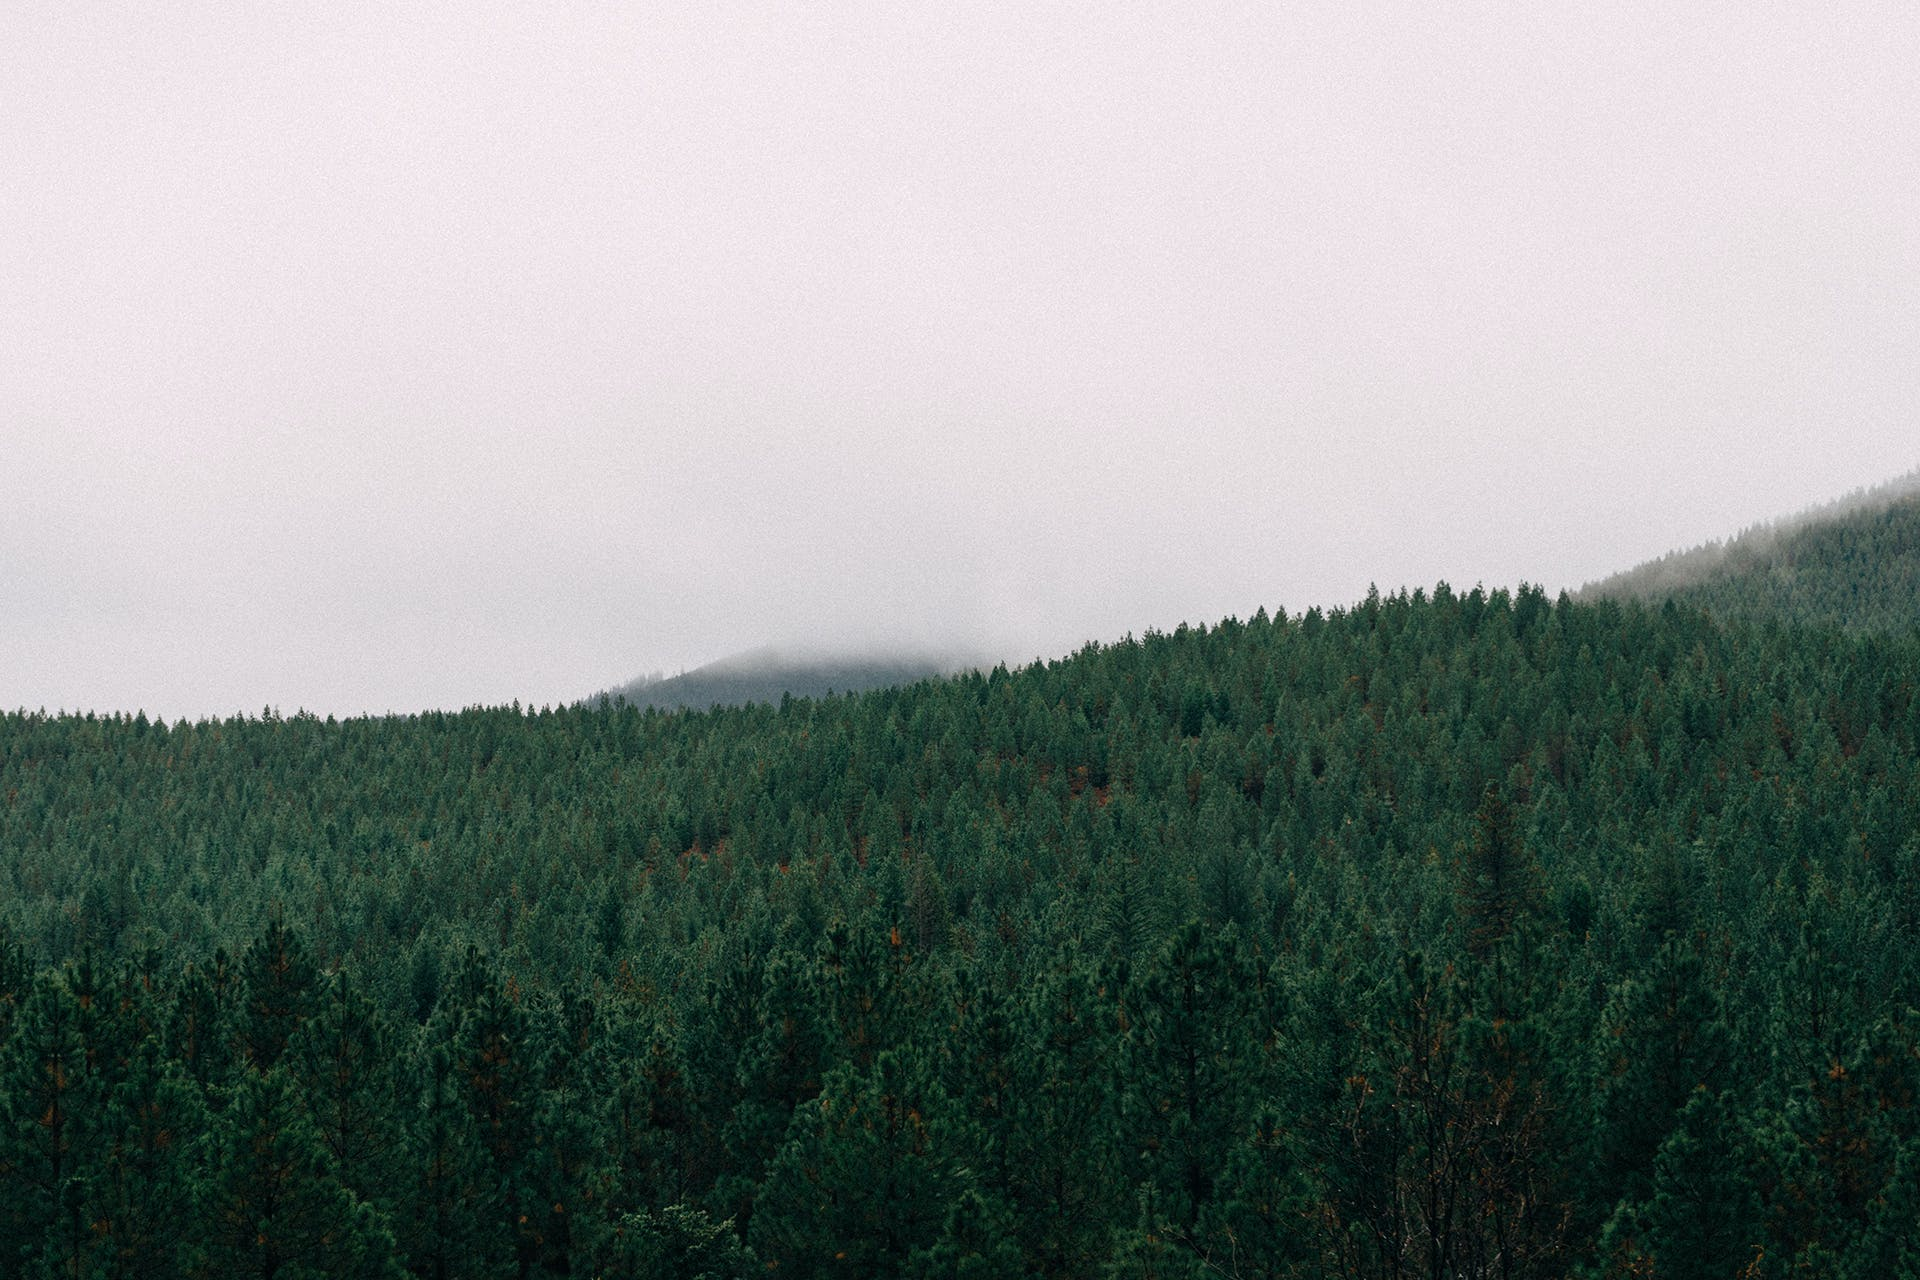 Free stock photo of forest, trees, whitespace